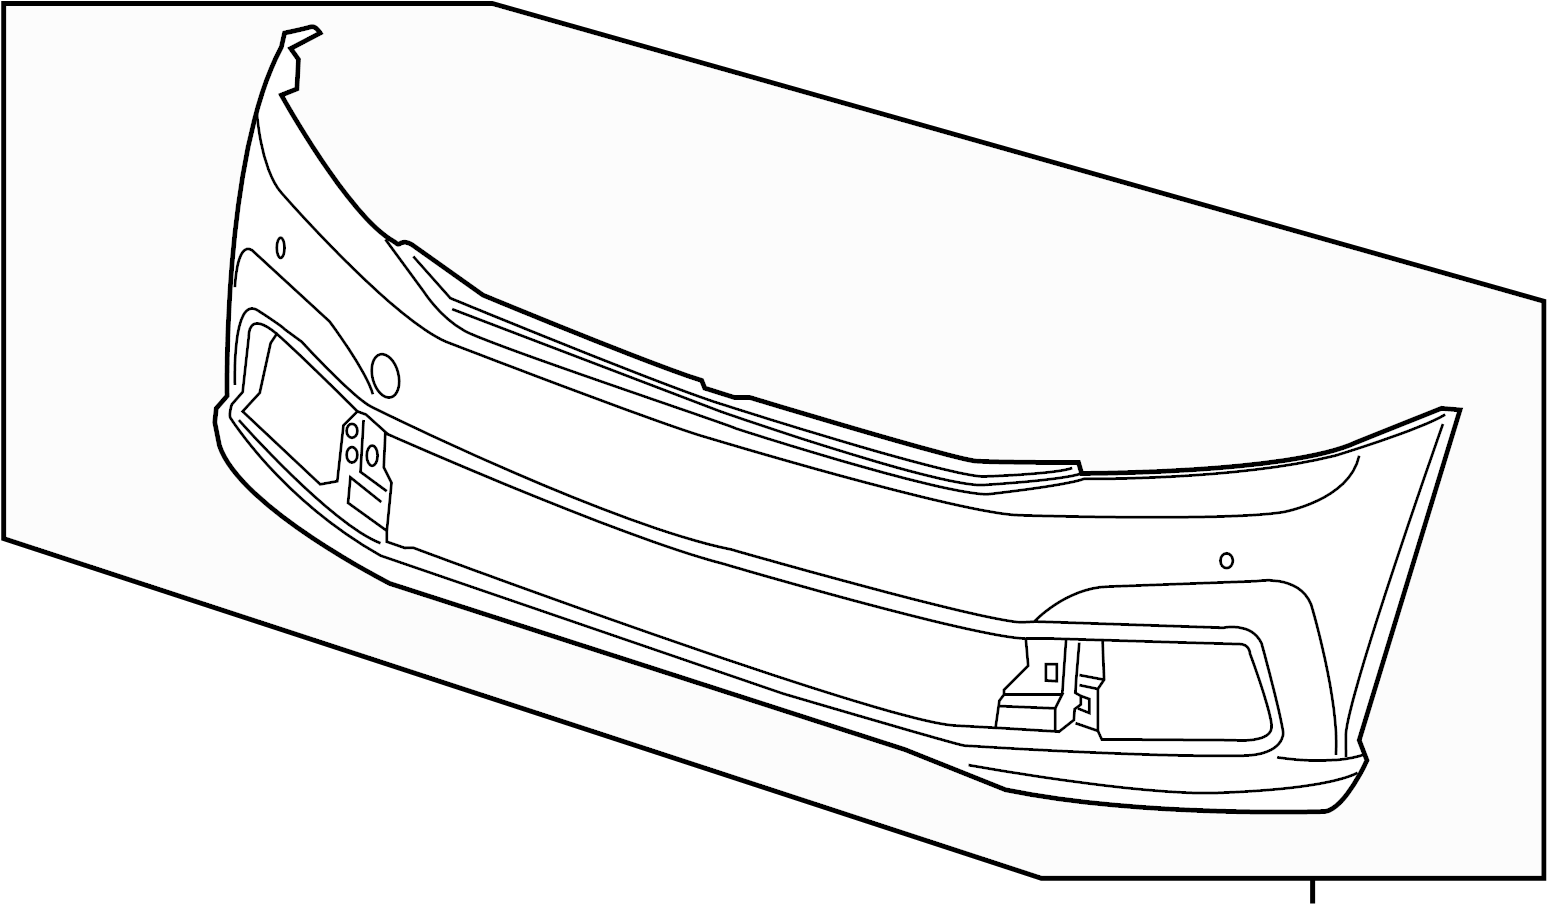 Volkswagen Passat Bumper Cover. 2016-19, COVER AND TRIM